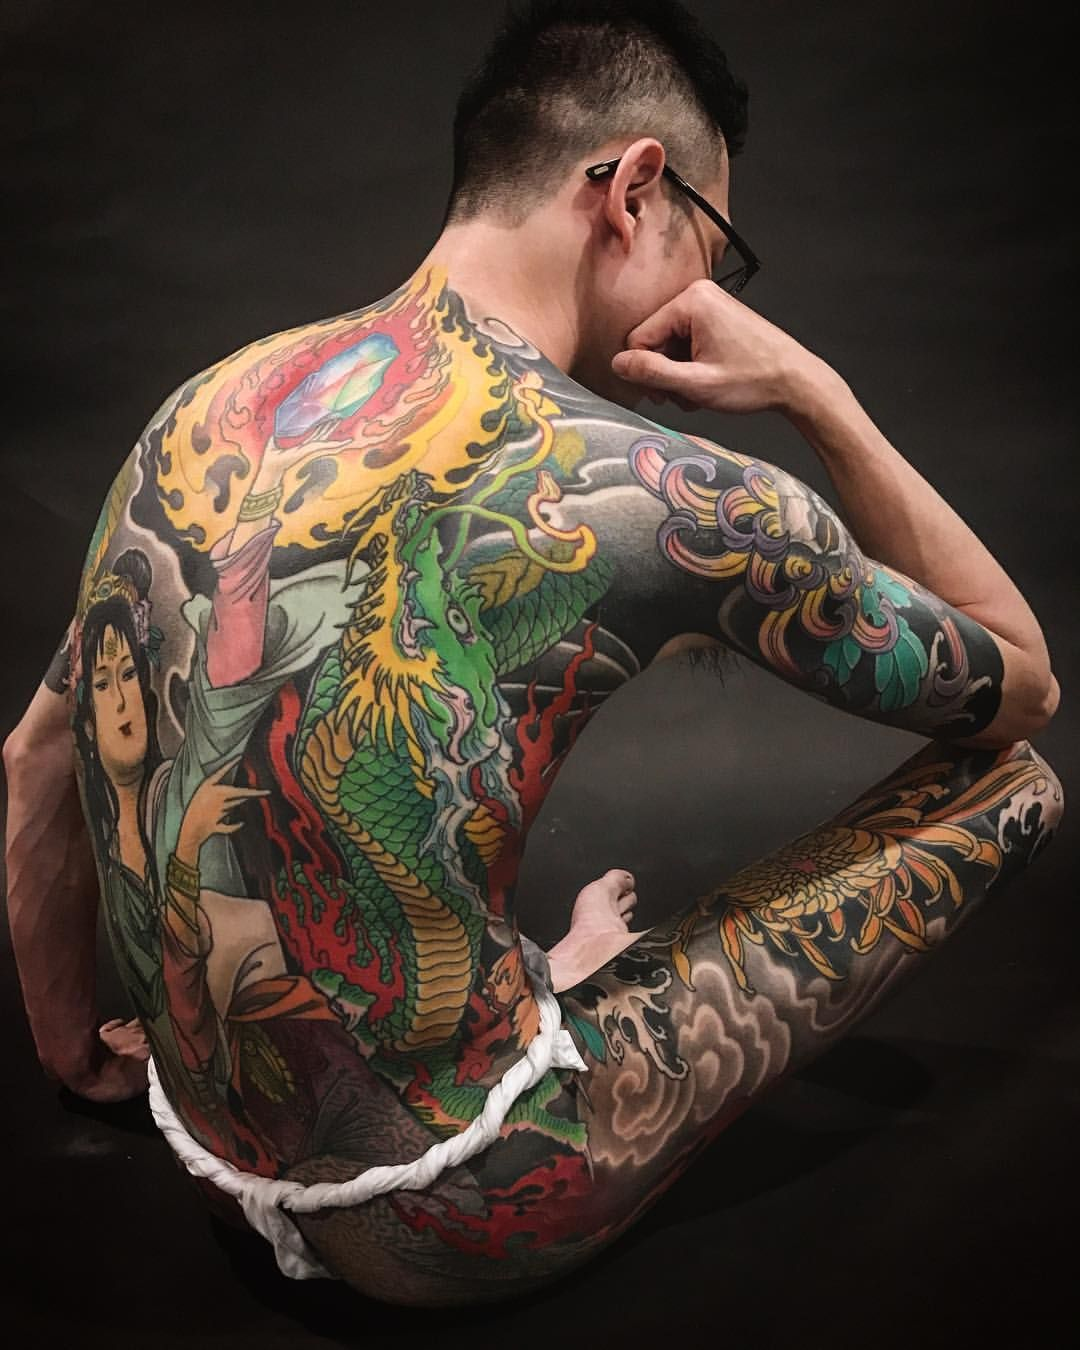 Japanese Gang Yakuza Full Body Tattoo Meanings (322)